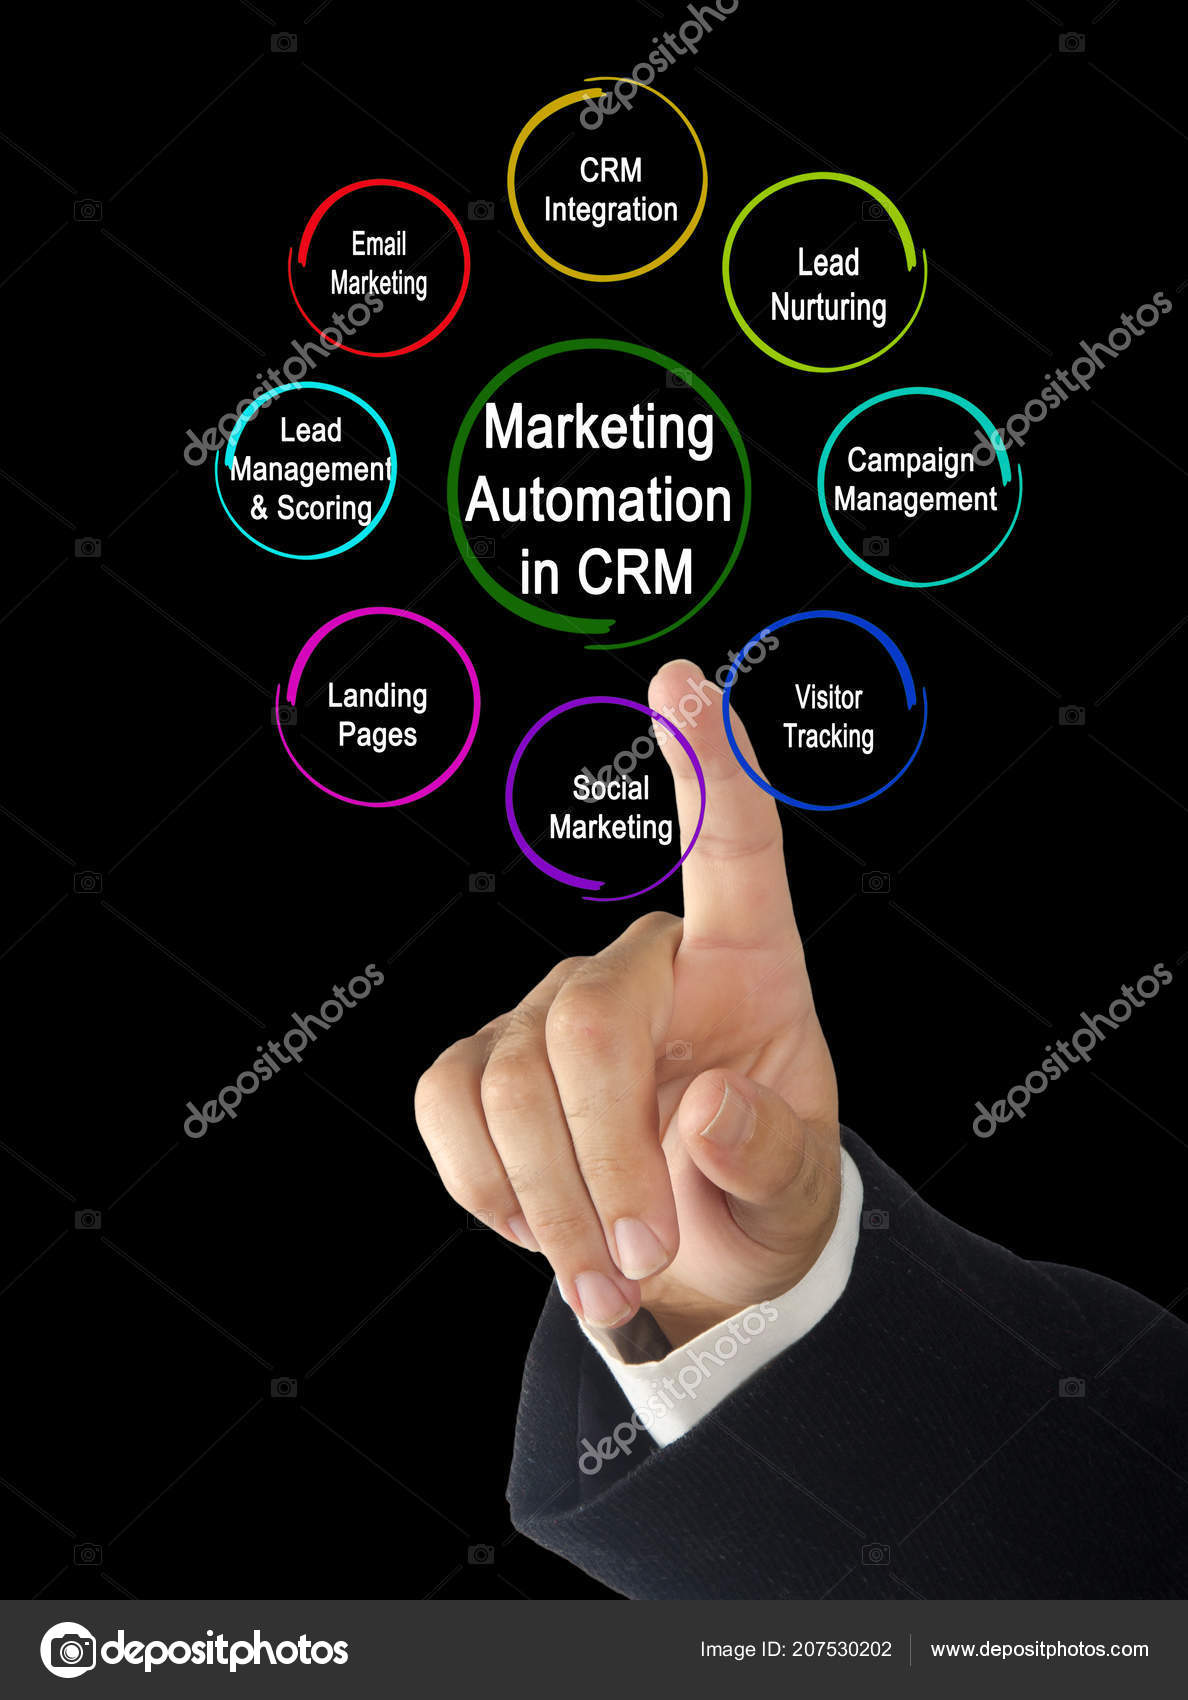 crm market and adoption of crm in india management essay Adoption of crm technology in multichannel environment: a review (2006-2010) preety awasthi and purnima s sangle national institute of industrial engineering, mumbai, india.